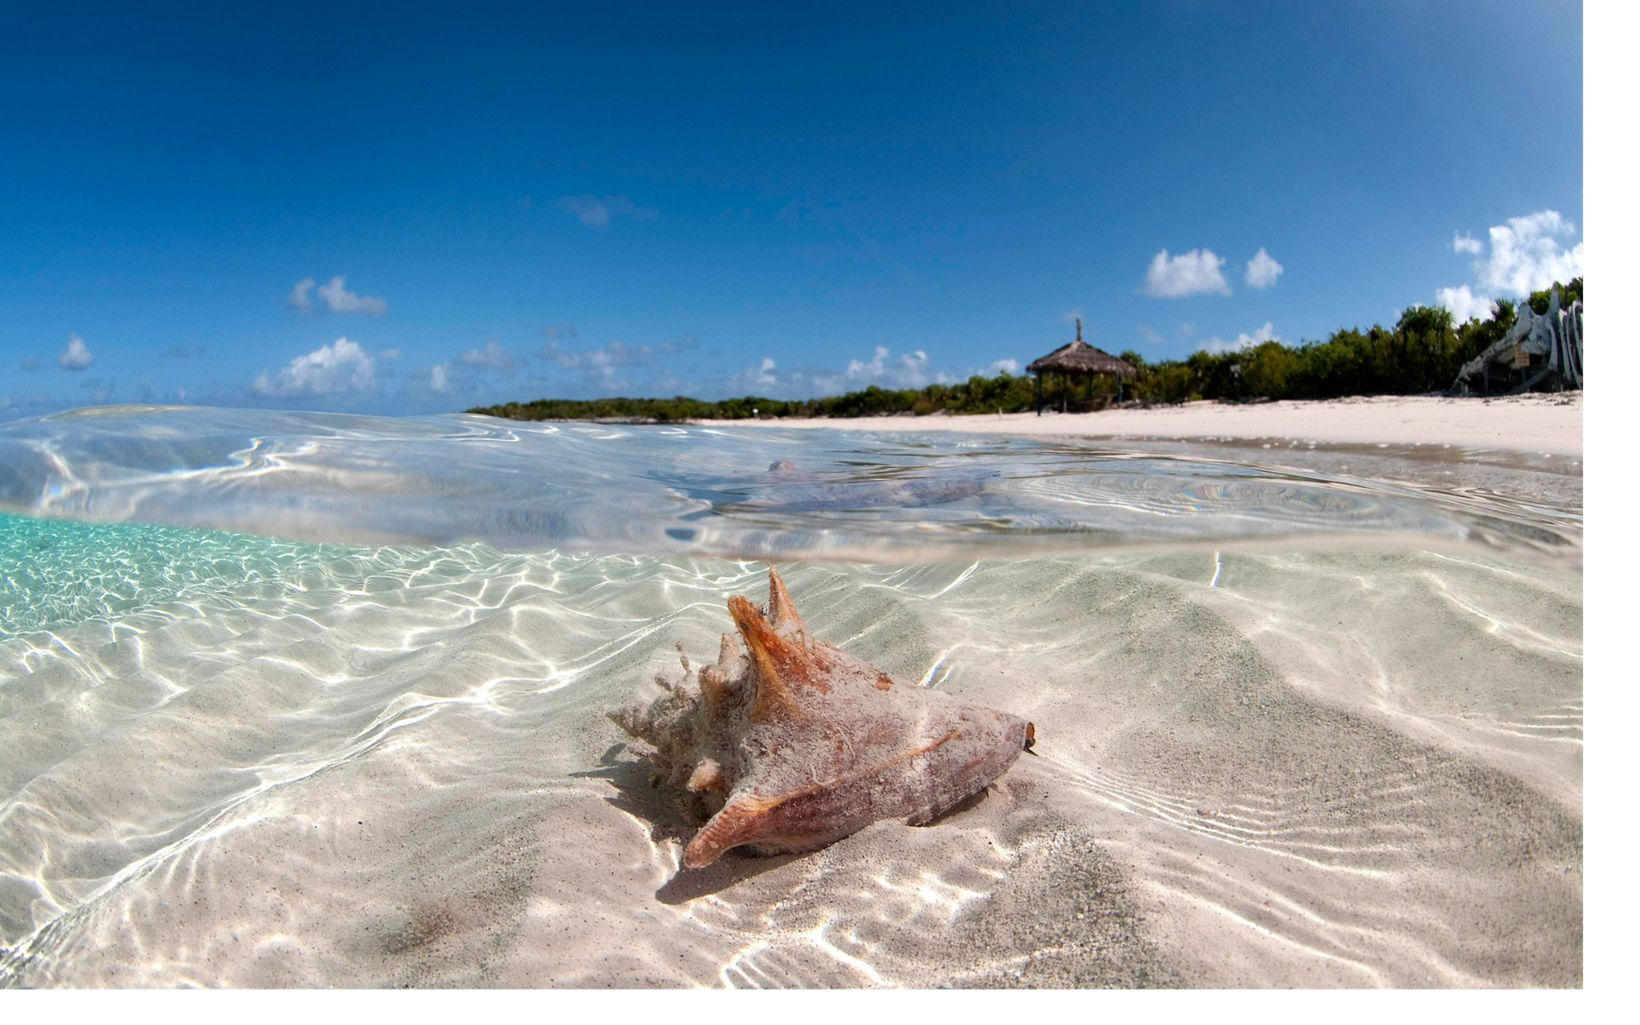 A conch rests in shallow waters of the Exuma Cays.